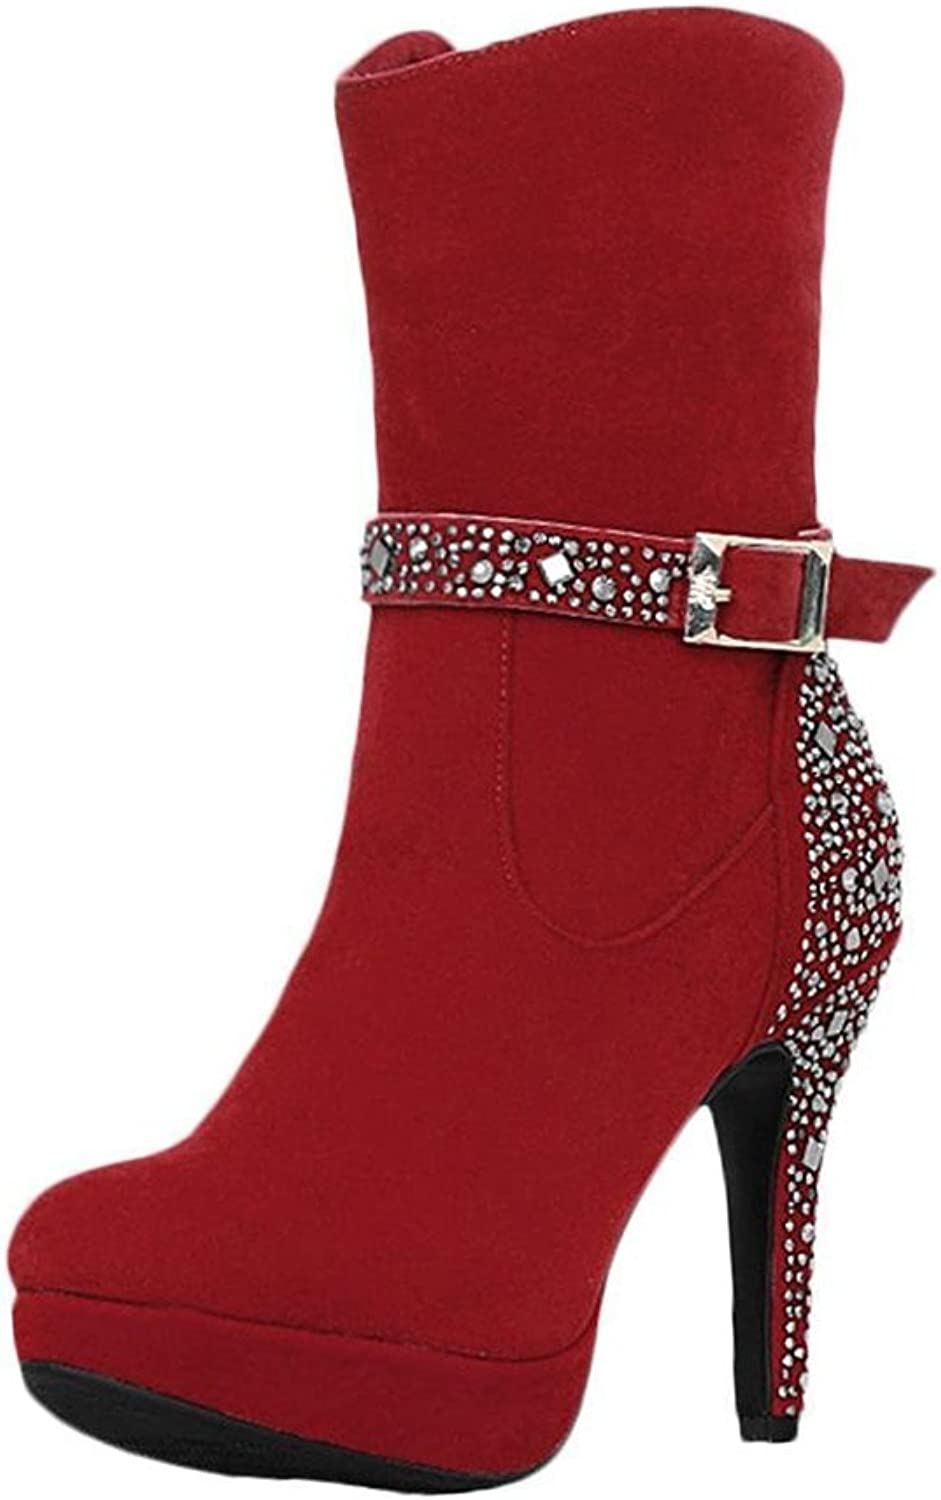 Agodor Womens Platform High Block Heel Mid Calf Boots with Zip Closed Toe Glitter Winter shoes